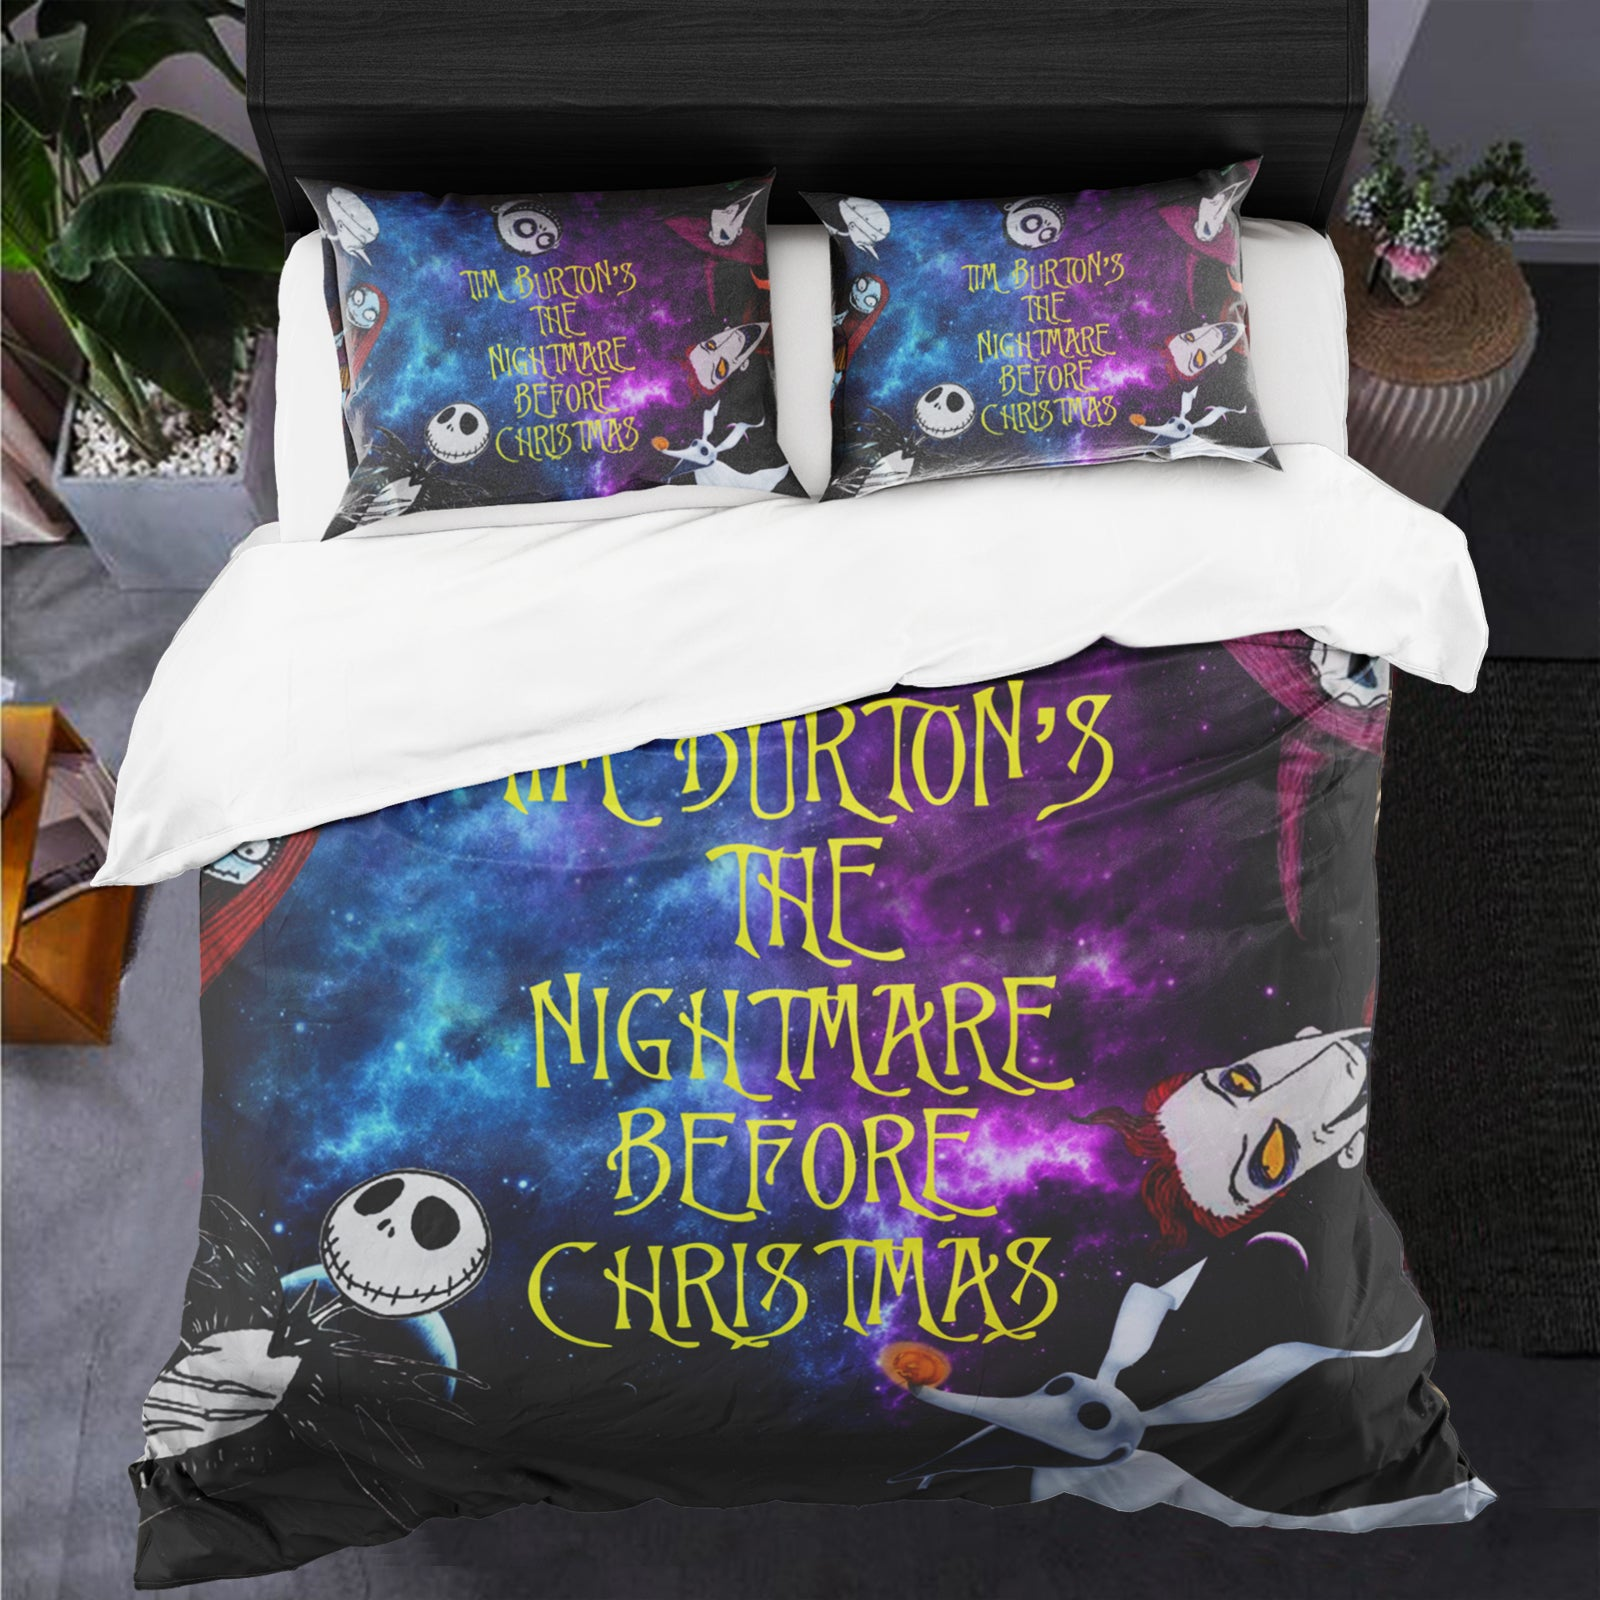 Bedding Set -  The NBC in Galaxy